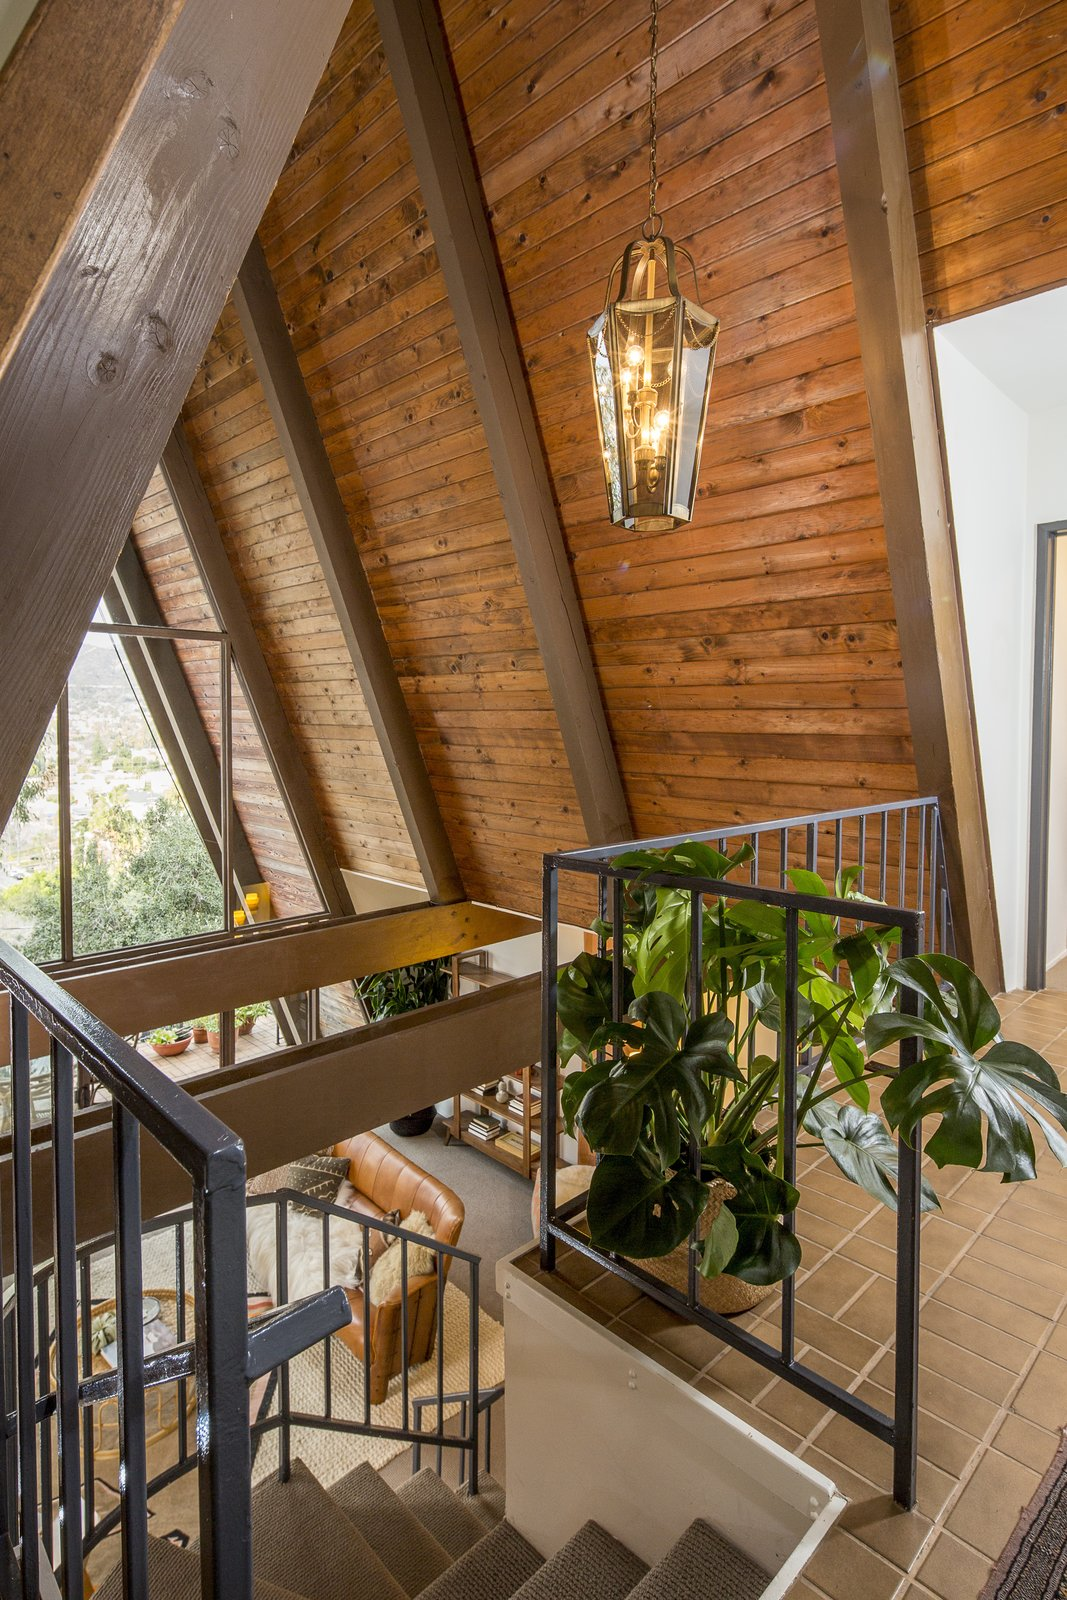 Upon entering, the foyer offers dramatic views of the San Gabriel Mountains straight ahead, framed by the wooden beams of the steeply pitched roof. On either side of the foyer are the master suite and second bedroom. A Modified A-Frame Overlooking Los Angeles Starts at $699K - Photo 3 of 10